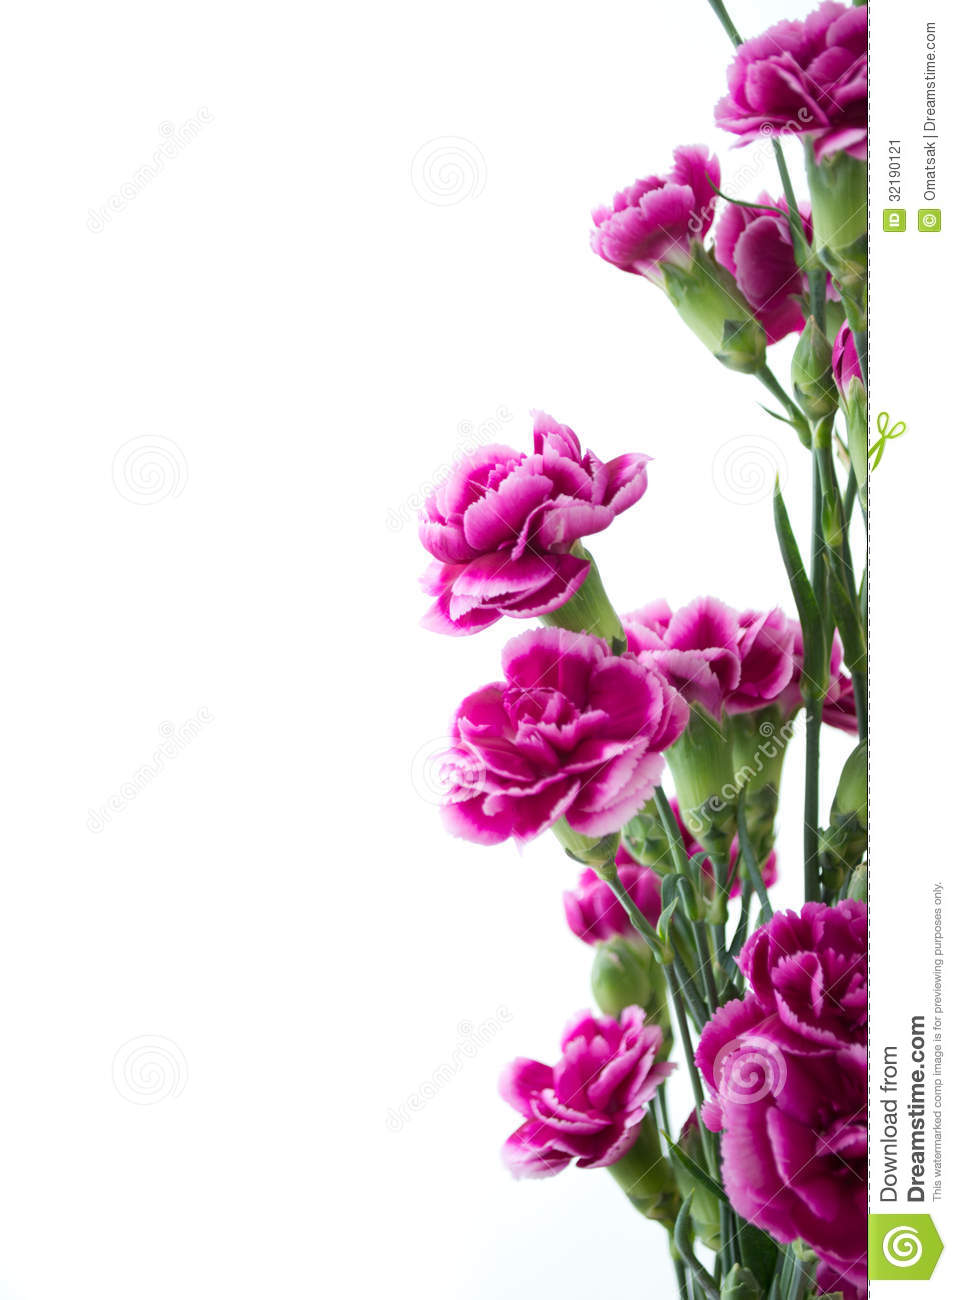 Purple carnation flowers over white background stock photo 32190121 purple carnation flowers over white background stock photo 32190121 megapixl mightylinksfo